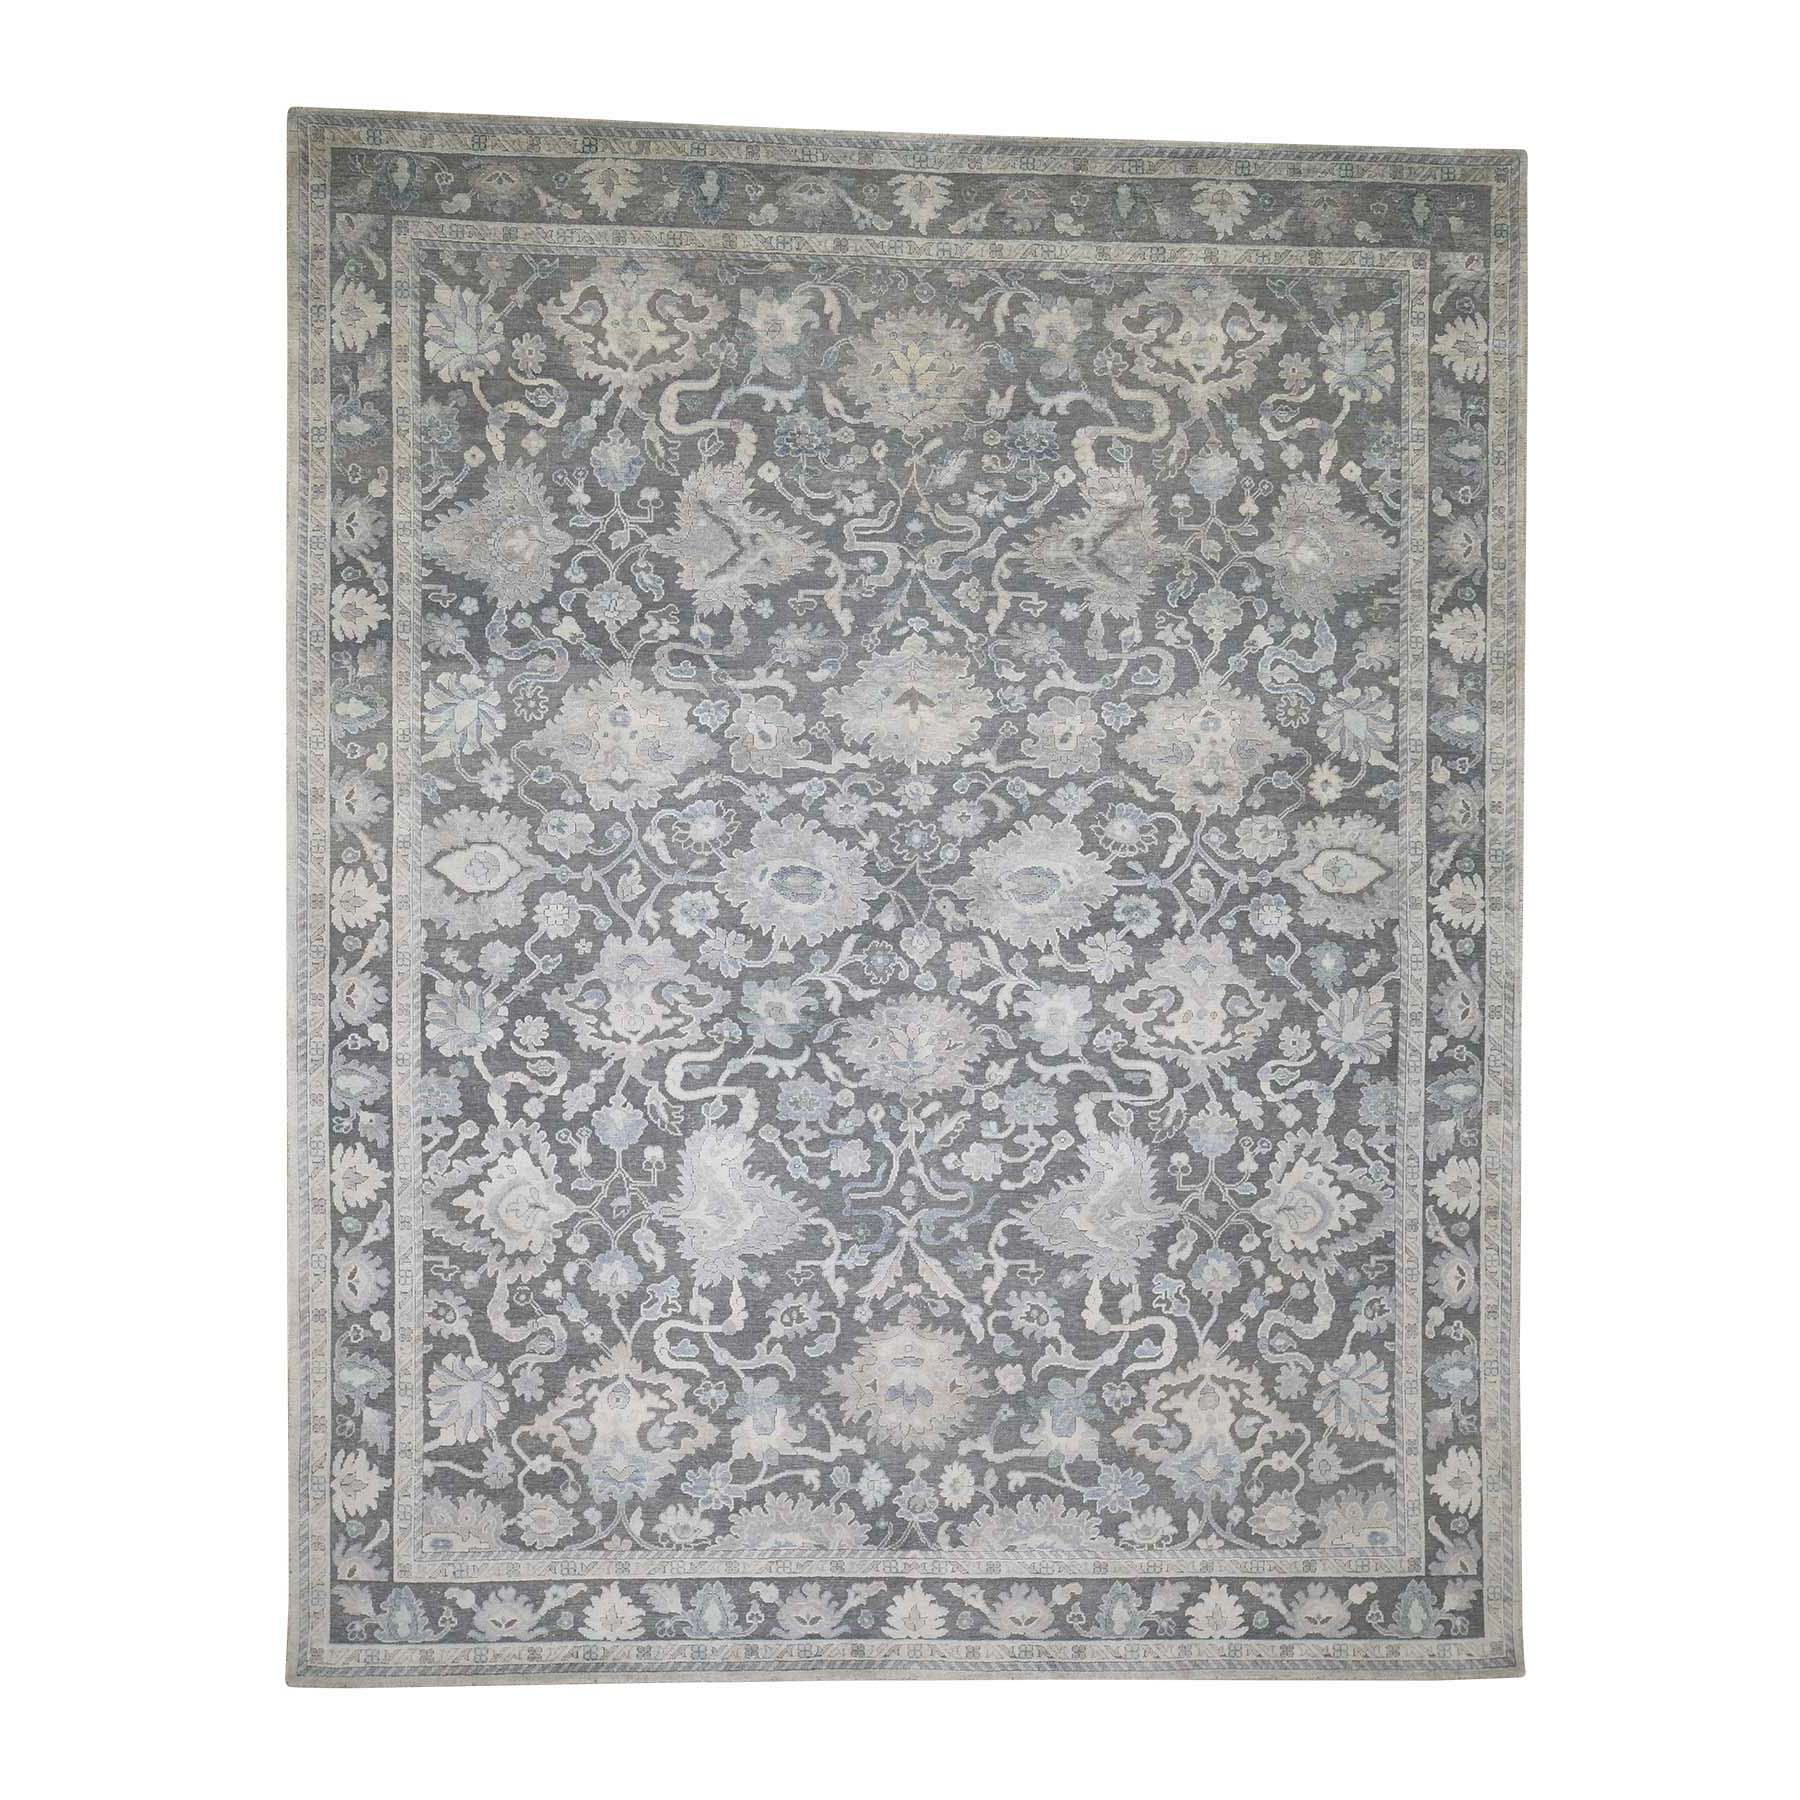 8-1 x10- Hand-Knotted Oushak Influence Silk Oxidized Wool Oriental Rug